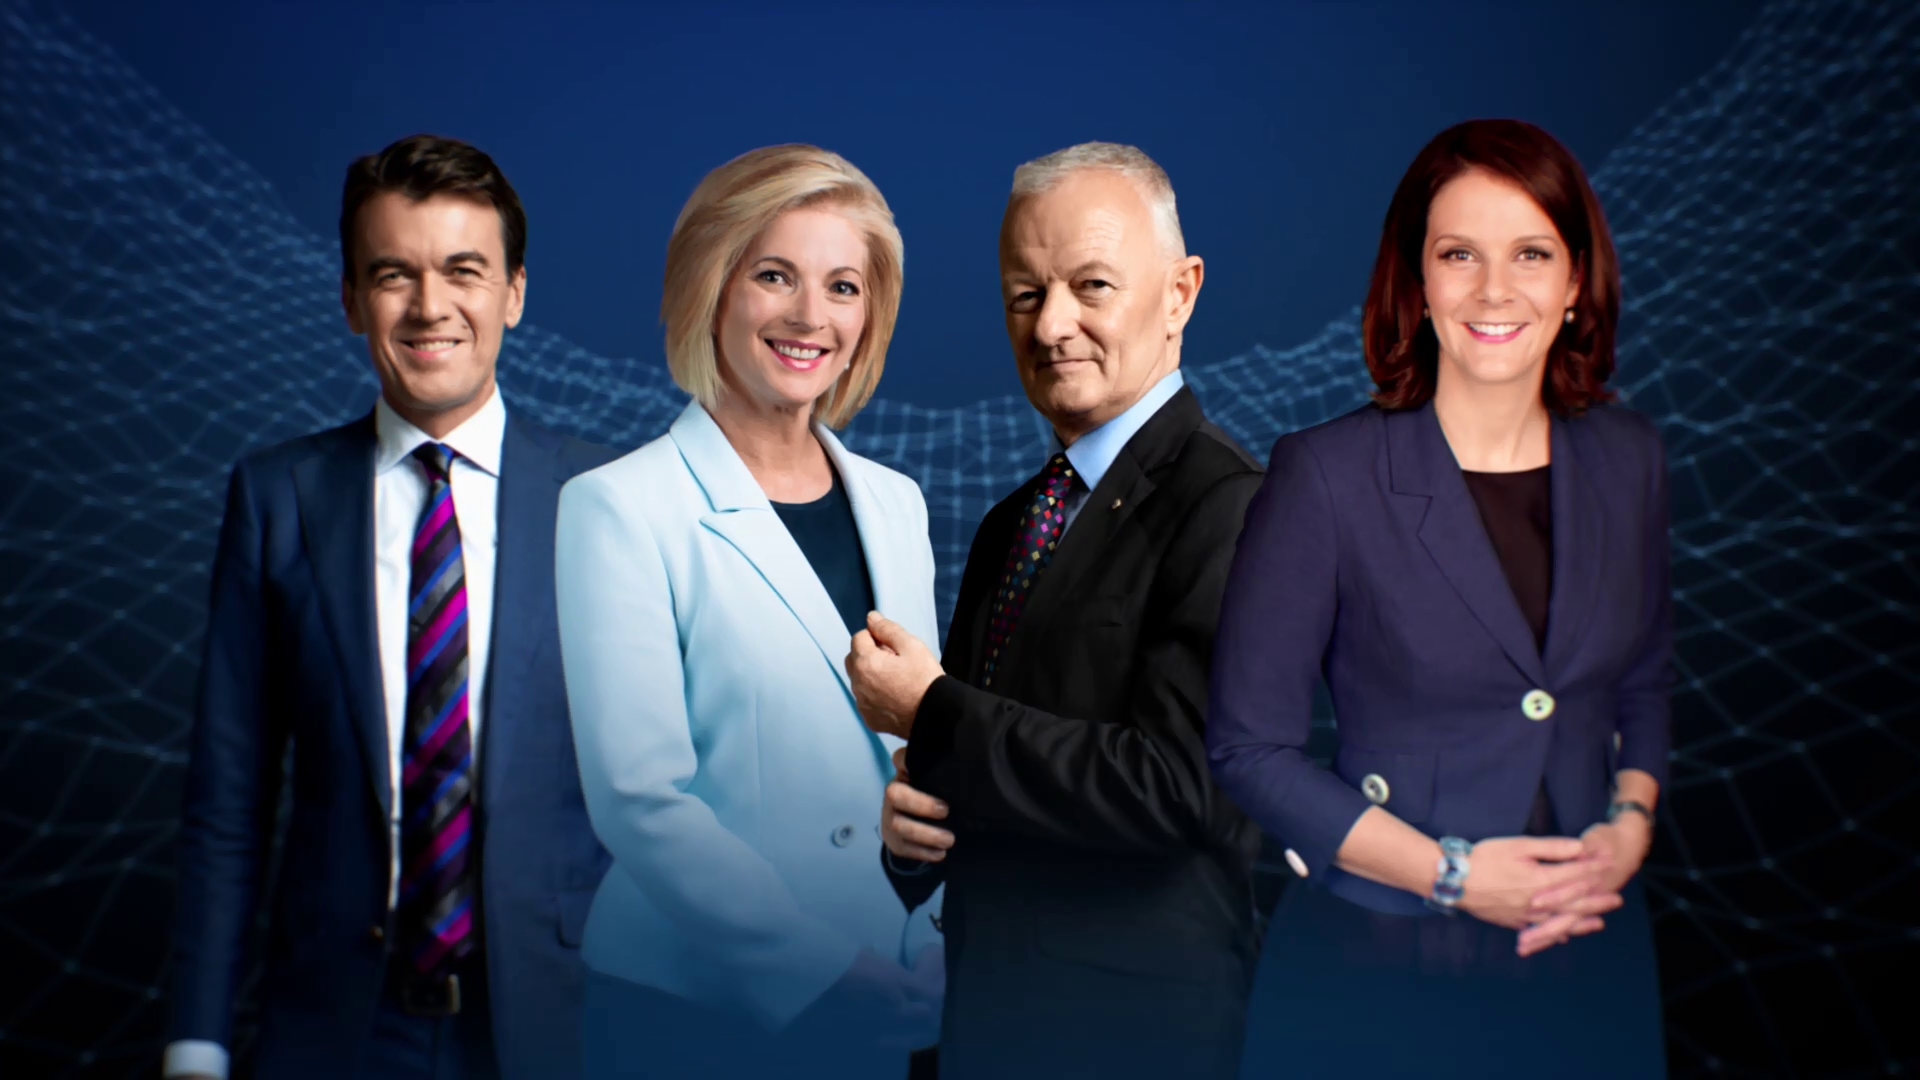 ABC-TV - Promo - NSW Votes, Election Night (March 2019) #2.jpg